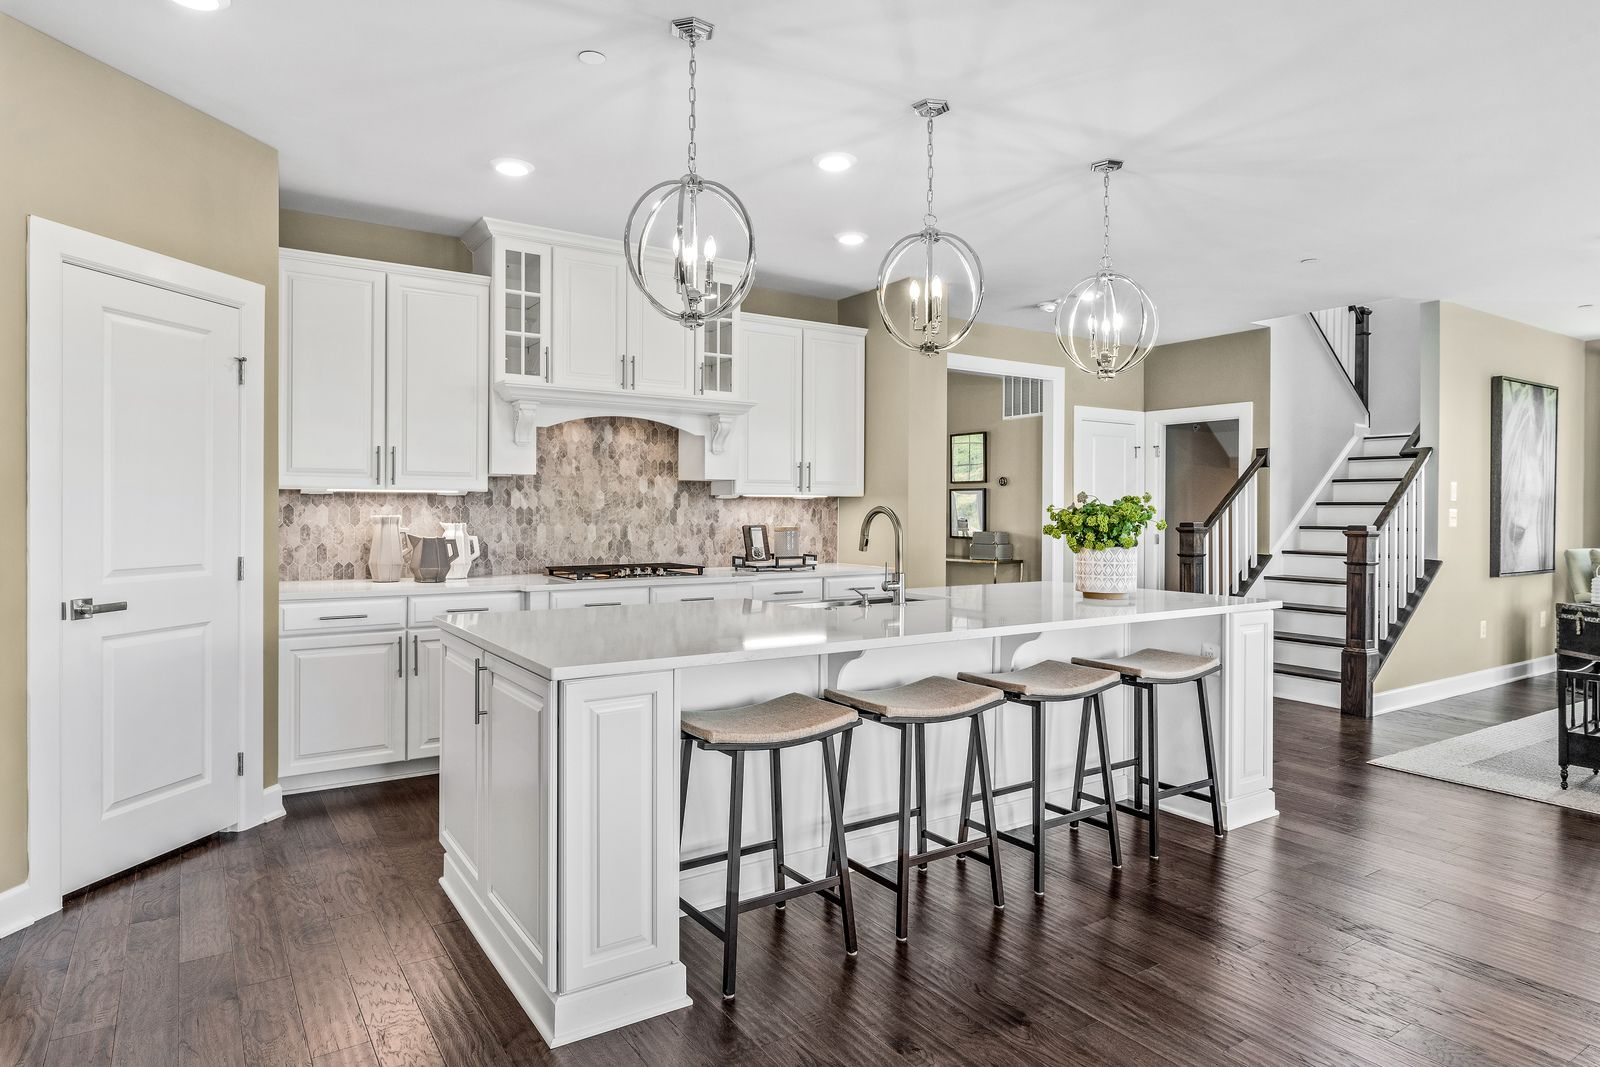 Kitchen featured in the Marymount By NVHomes in Philadelphia, PA